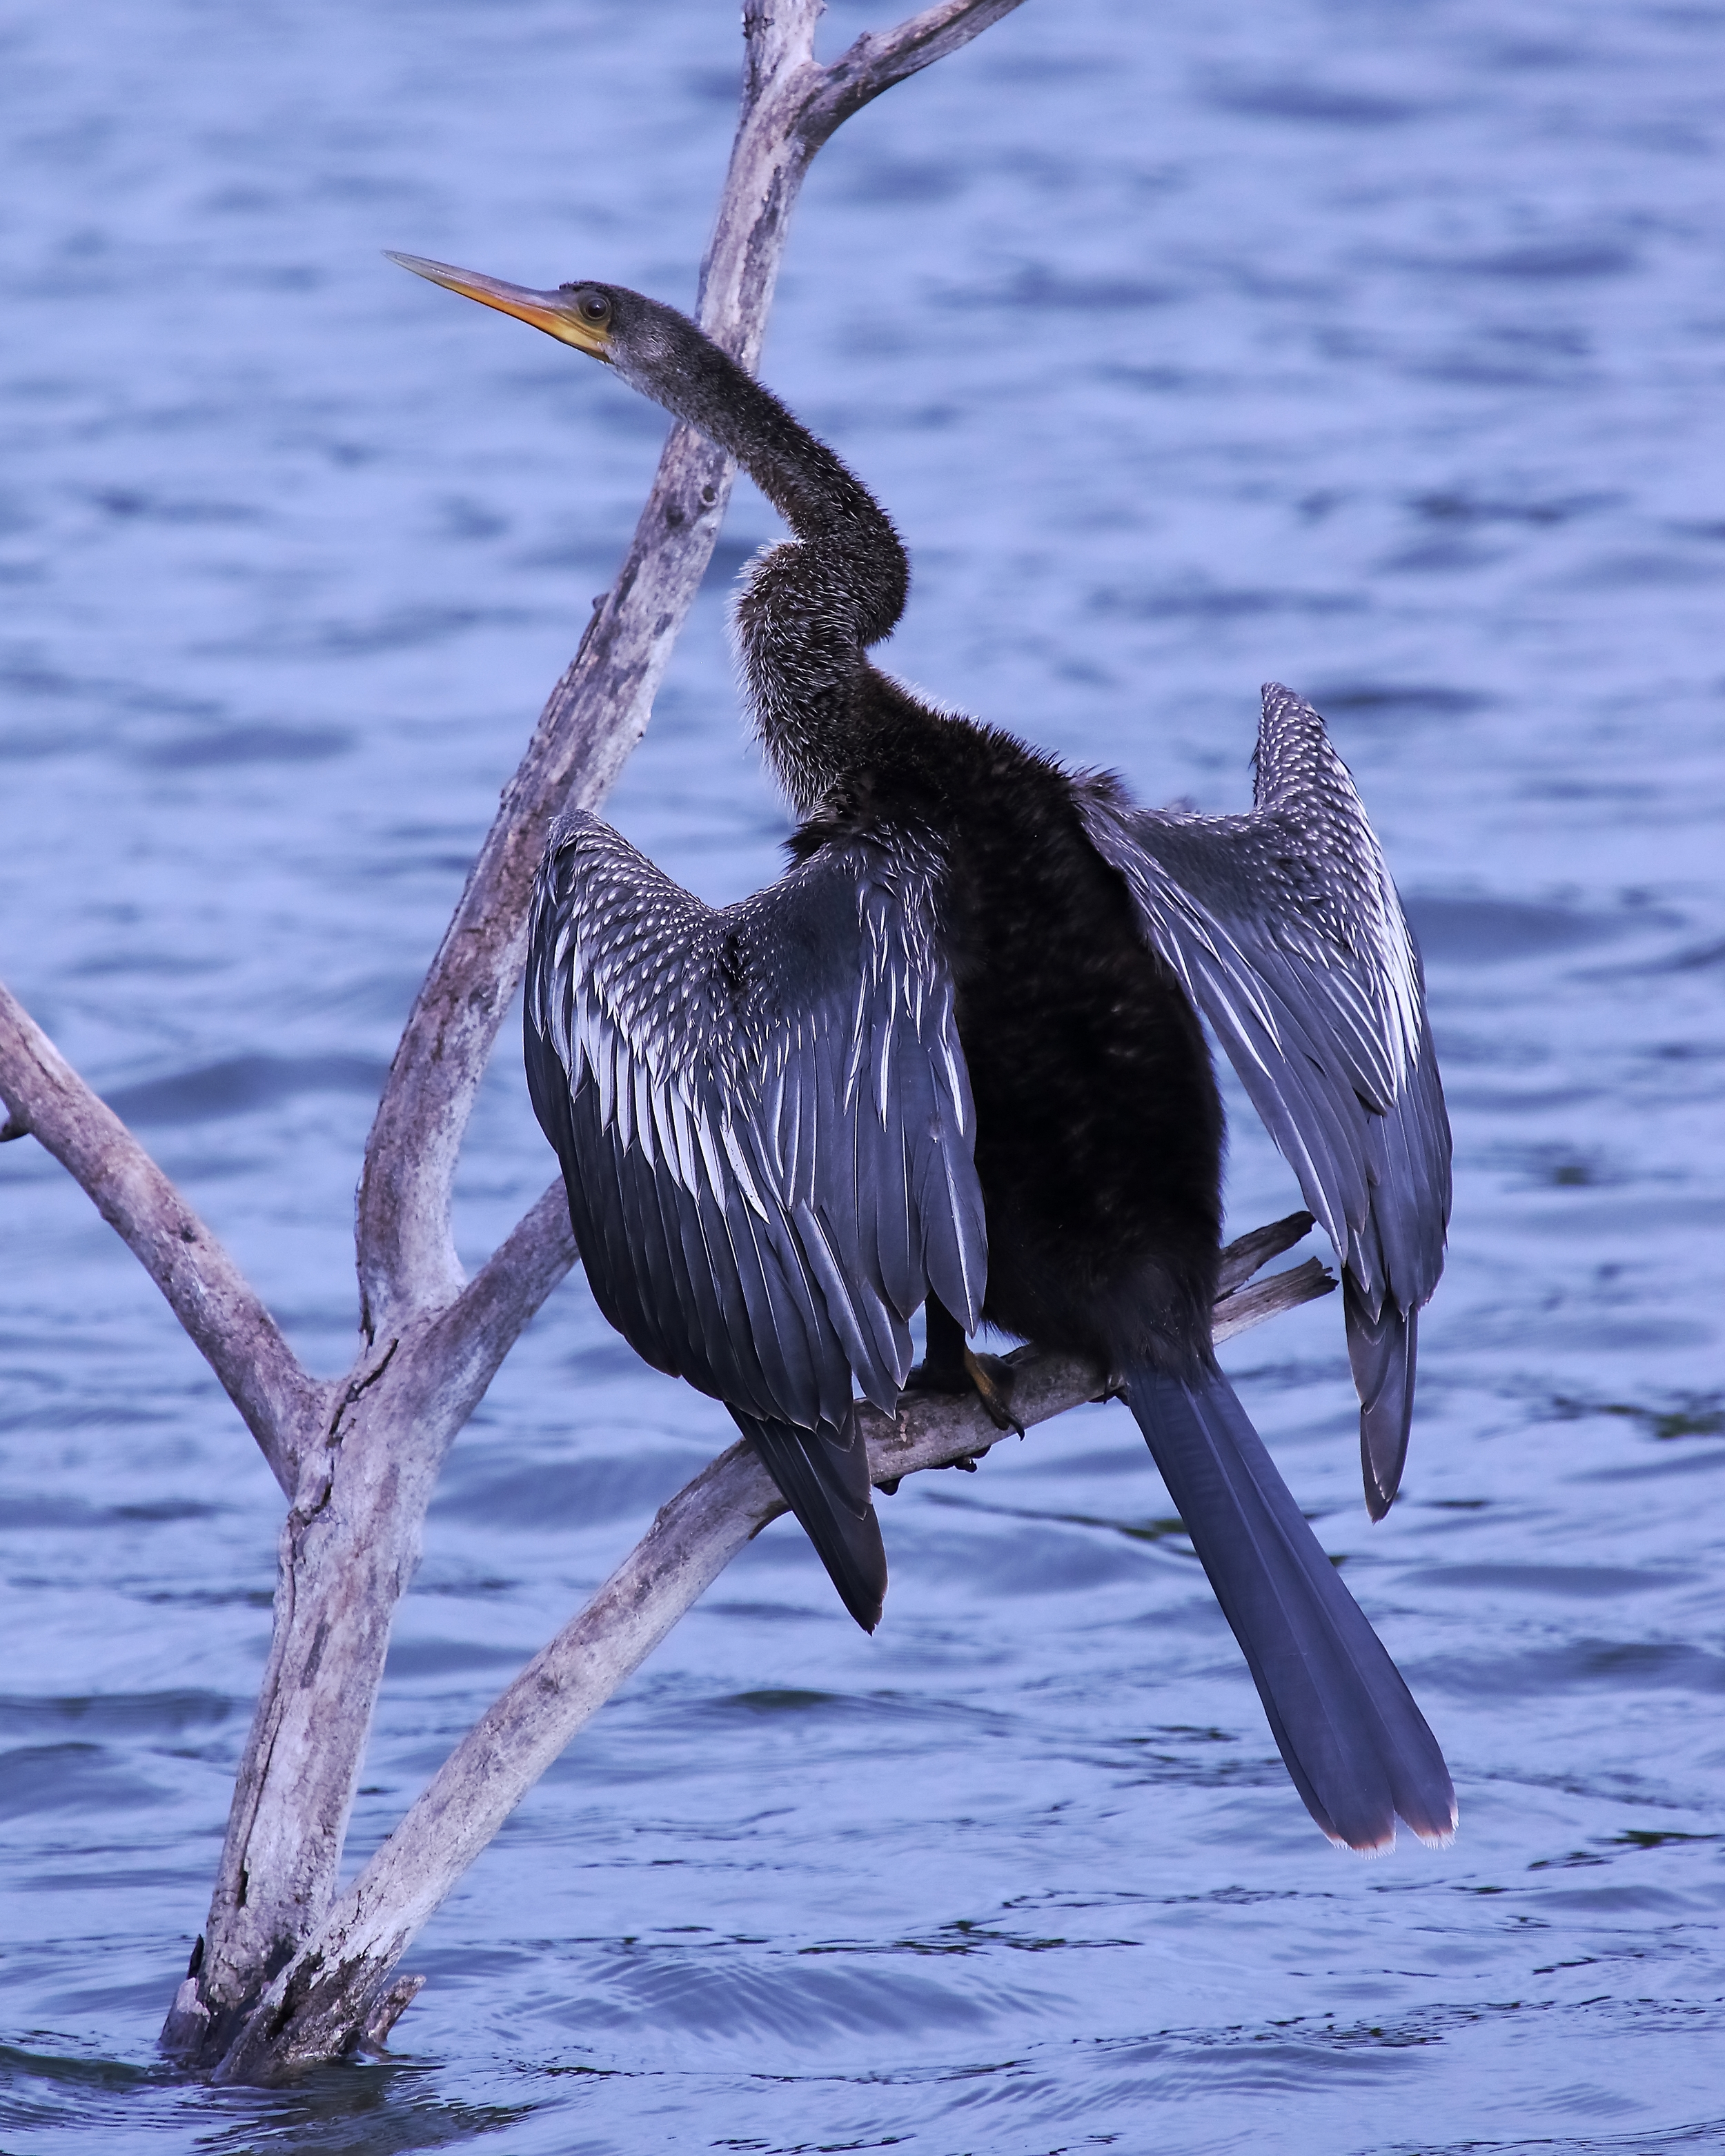 Male Anhinga in classic pose drying its wings, Venice Bird Rookery